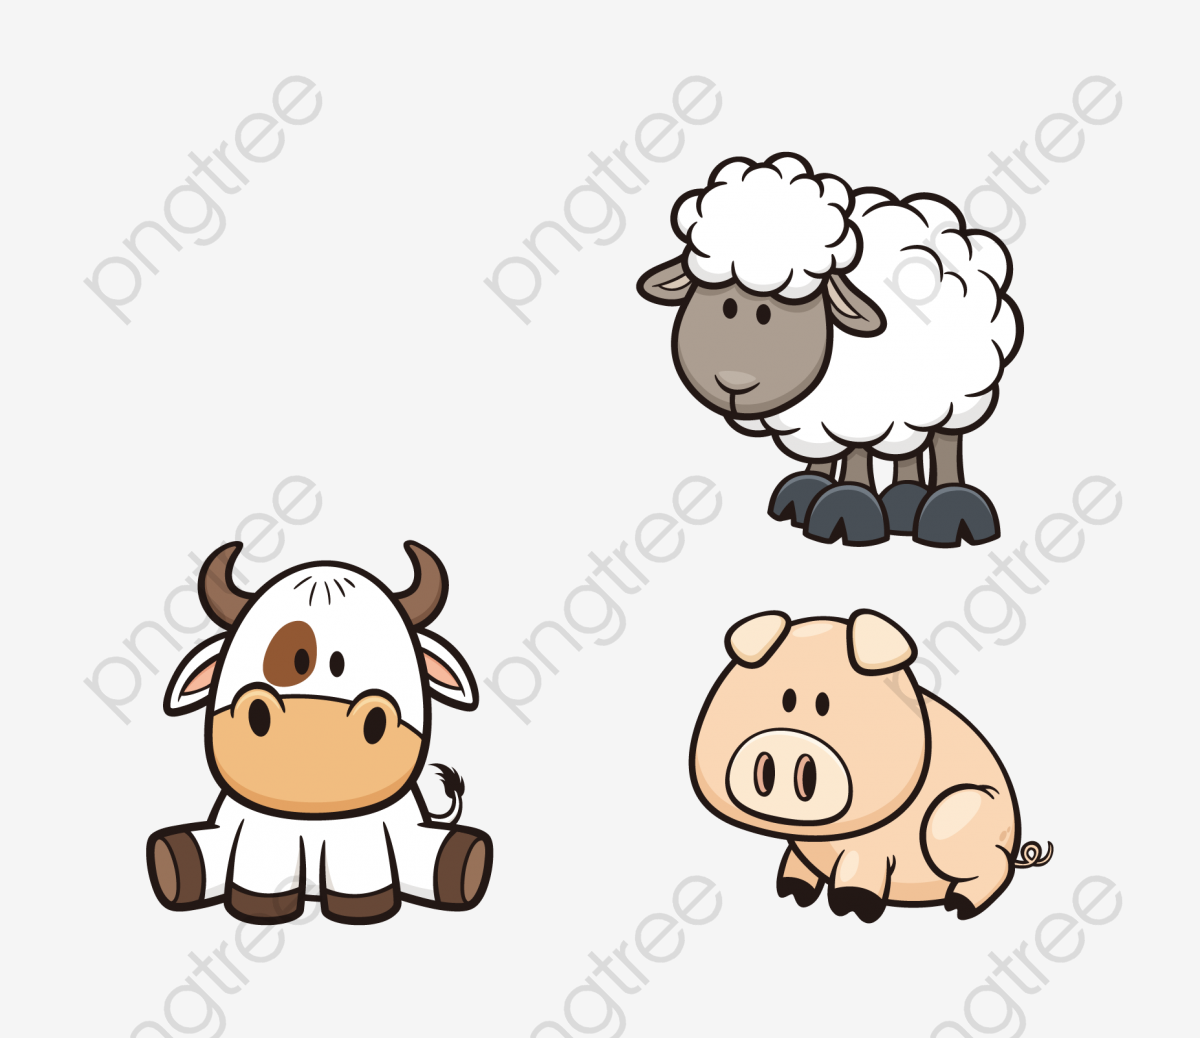 Transparent sheep PNG Format Image With Size 1855*1598 Preview Page.